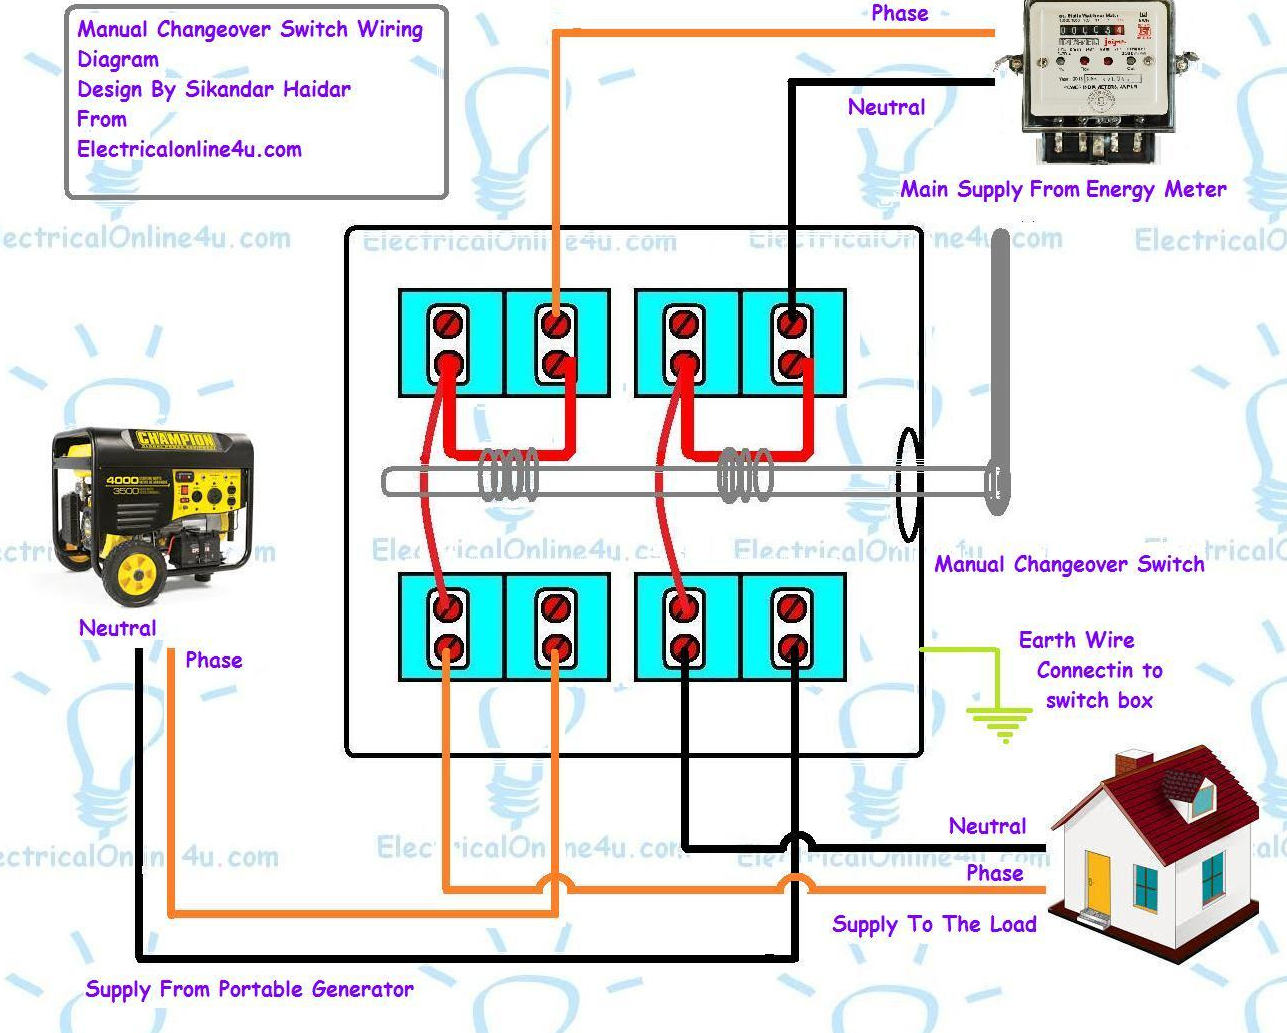 Wiring Diagram For Switched Outlet Manual Guide